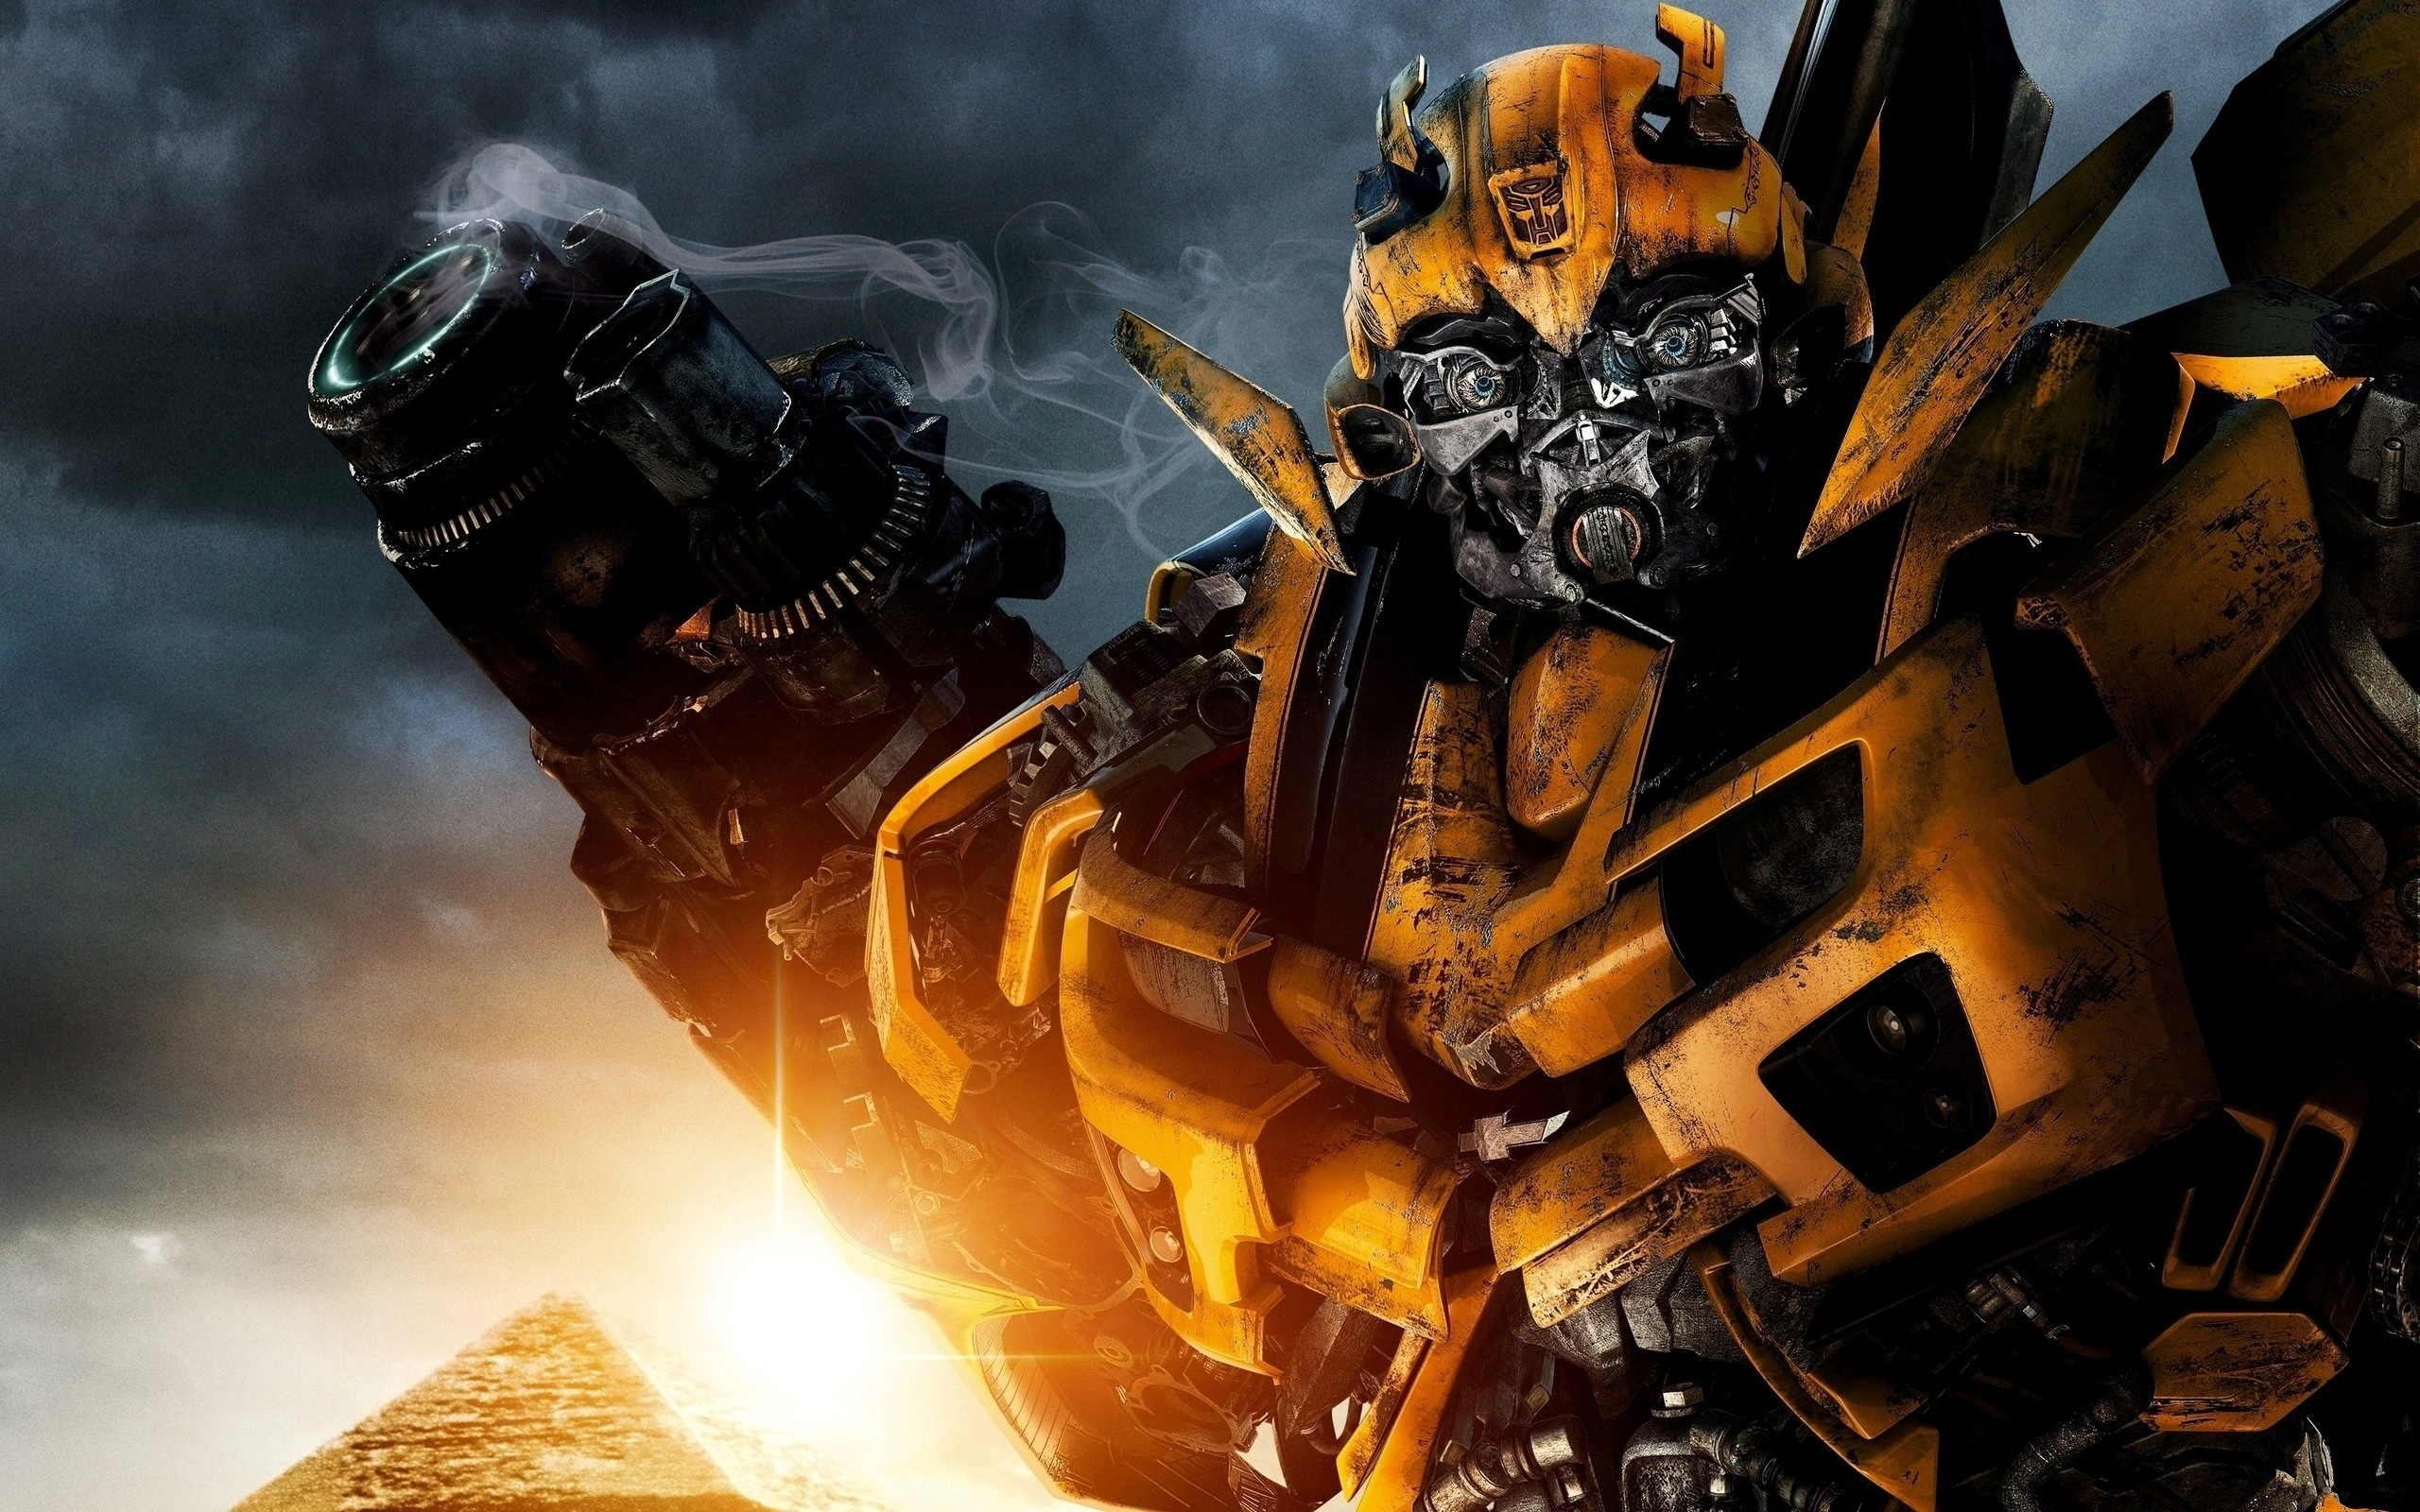 bumblebee transformers ree wallpaper hd